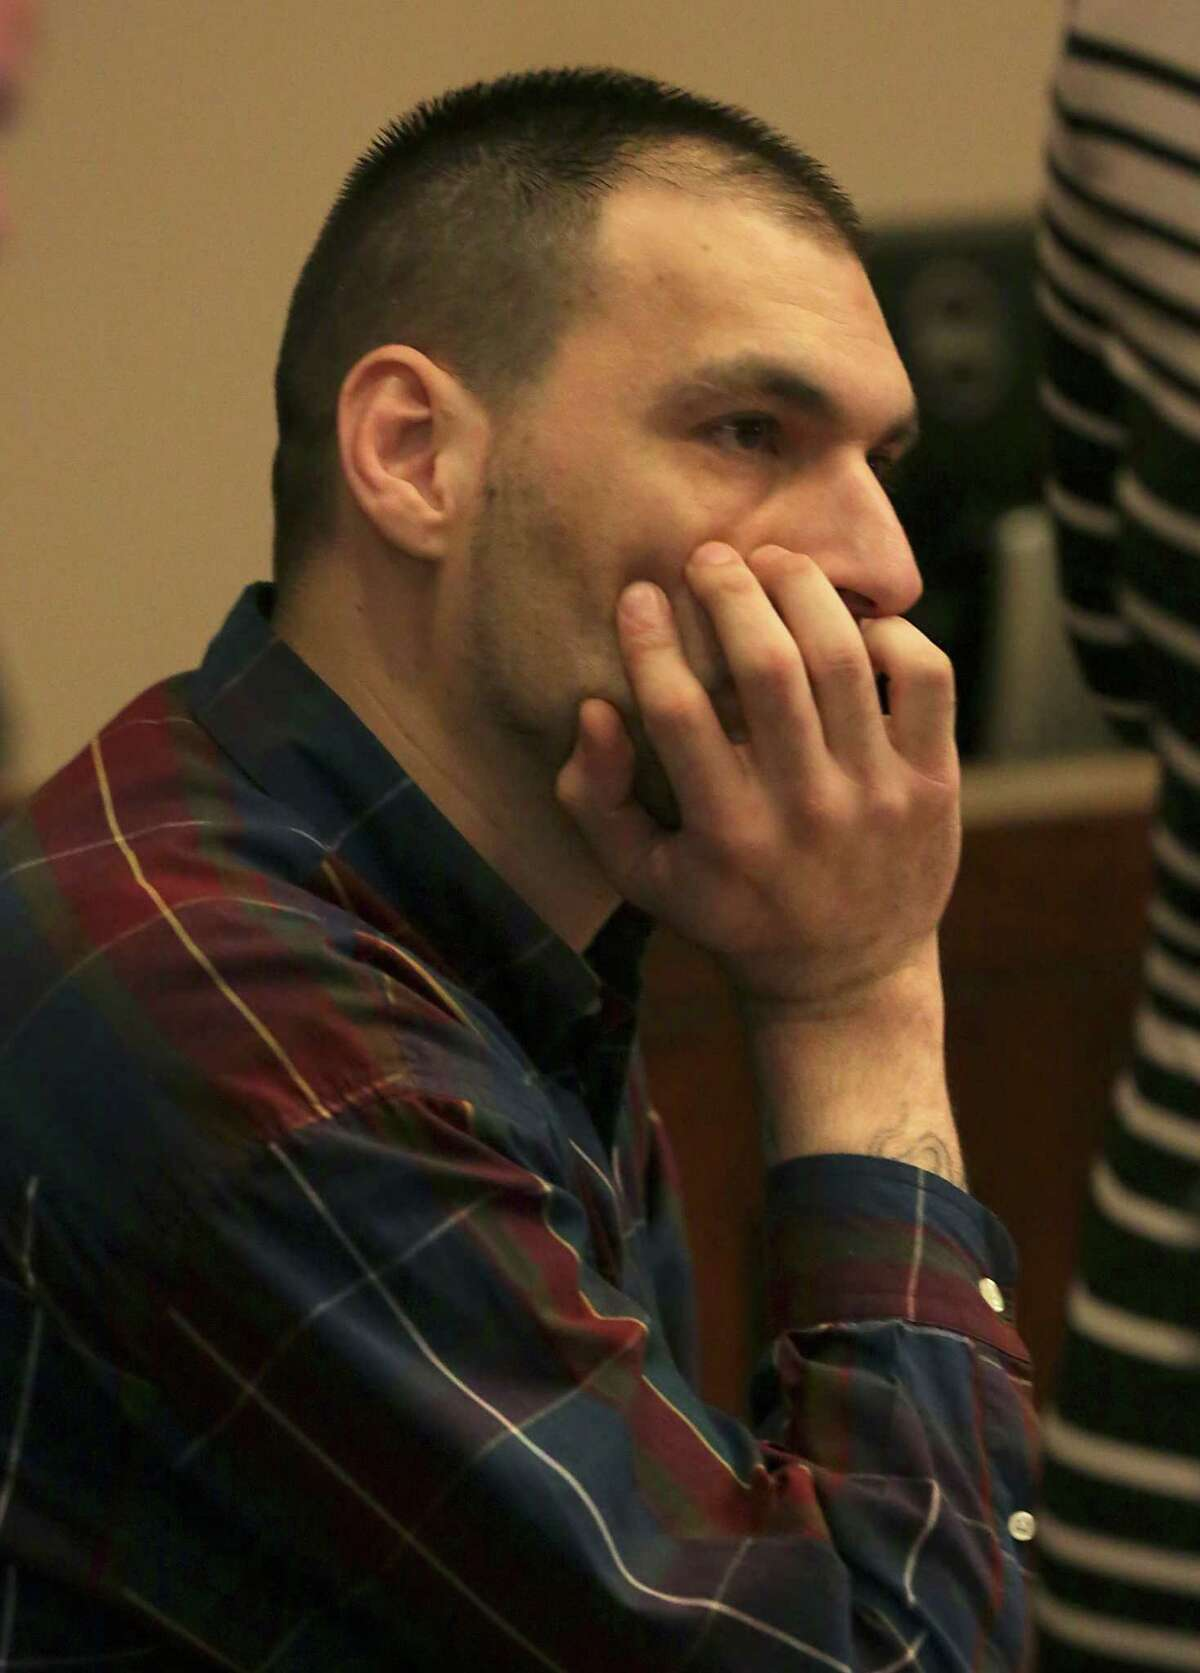 Jose Gonzalez, convicted in the murder of his roommate Ahn Cisneros, sits in the 144th State District Court in the Cadena-Reeves Justice Center on Wednesday, July 29, 2015.